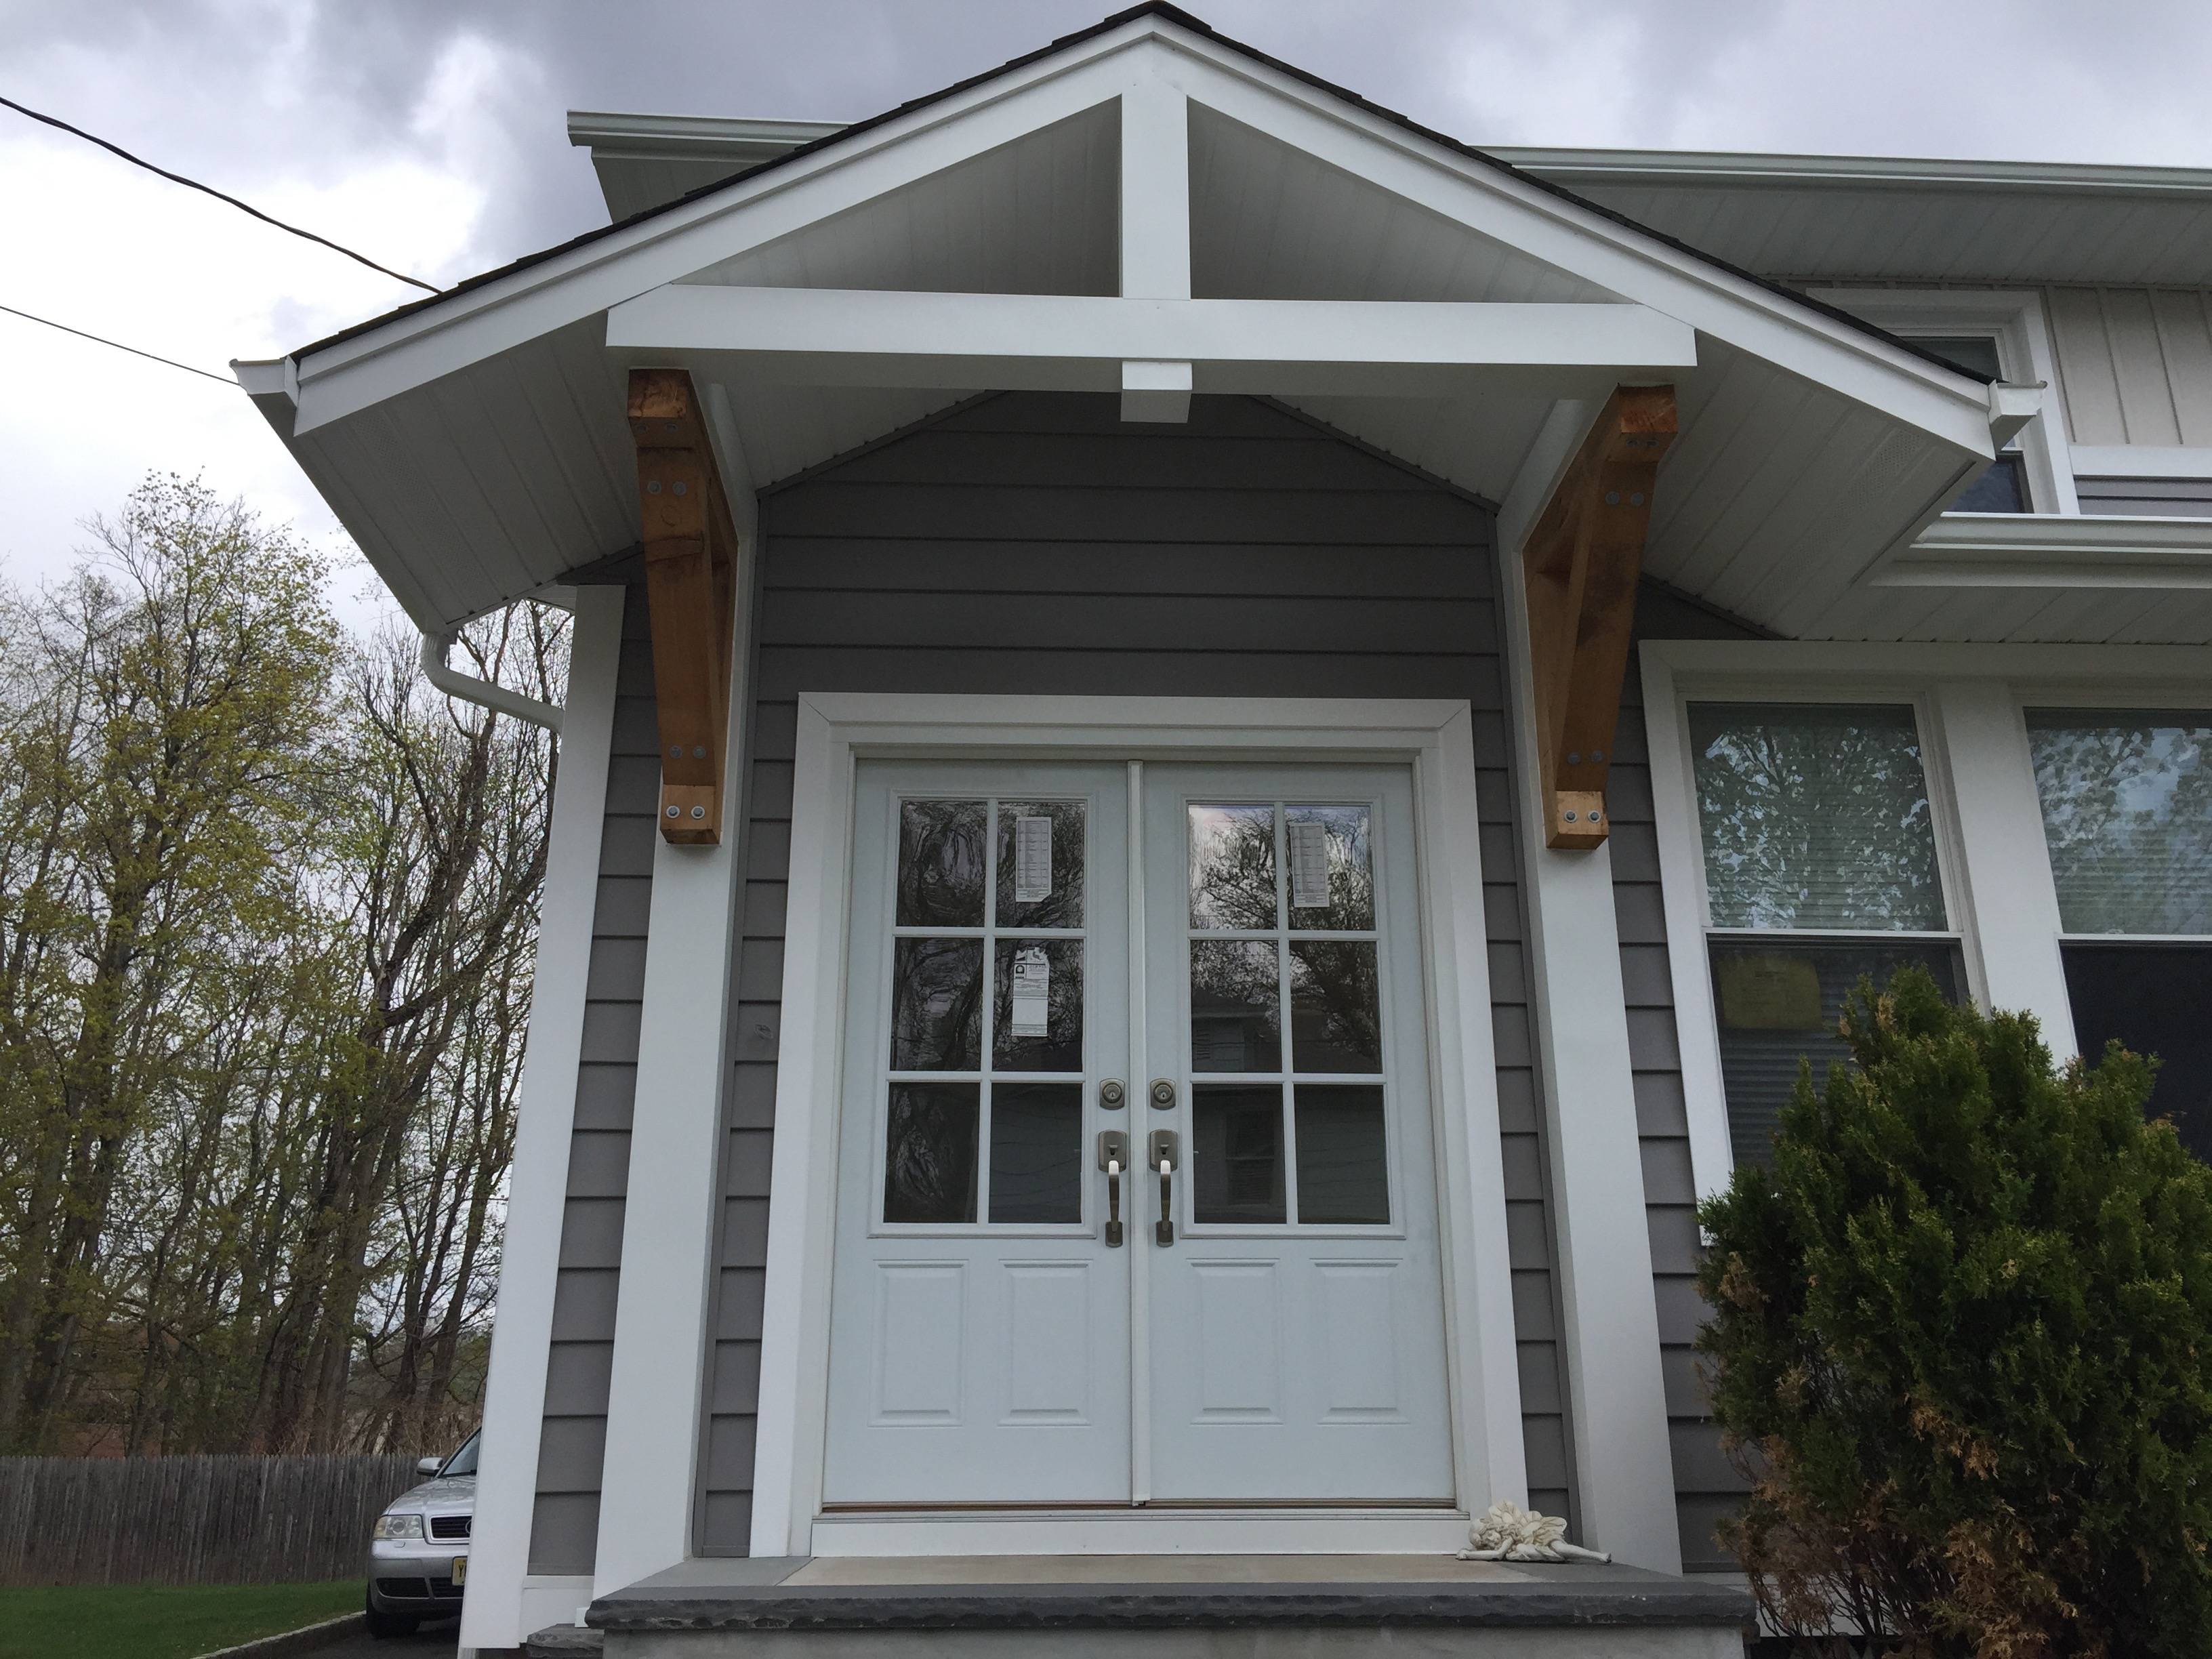 New jersey passaic county wayne - Crane Foam Backed Vinyl Siding Colors Cost R Value Installation Nj New Jersey Passaic County Essex